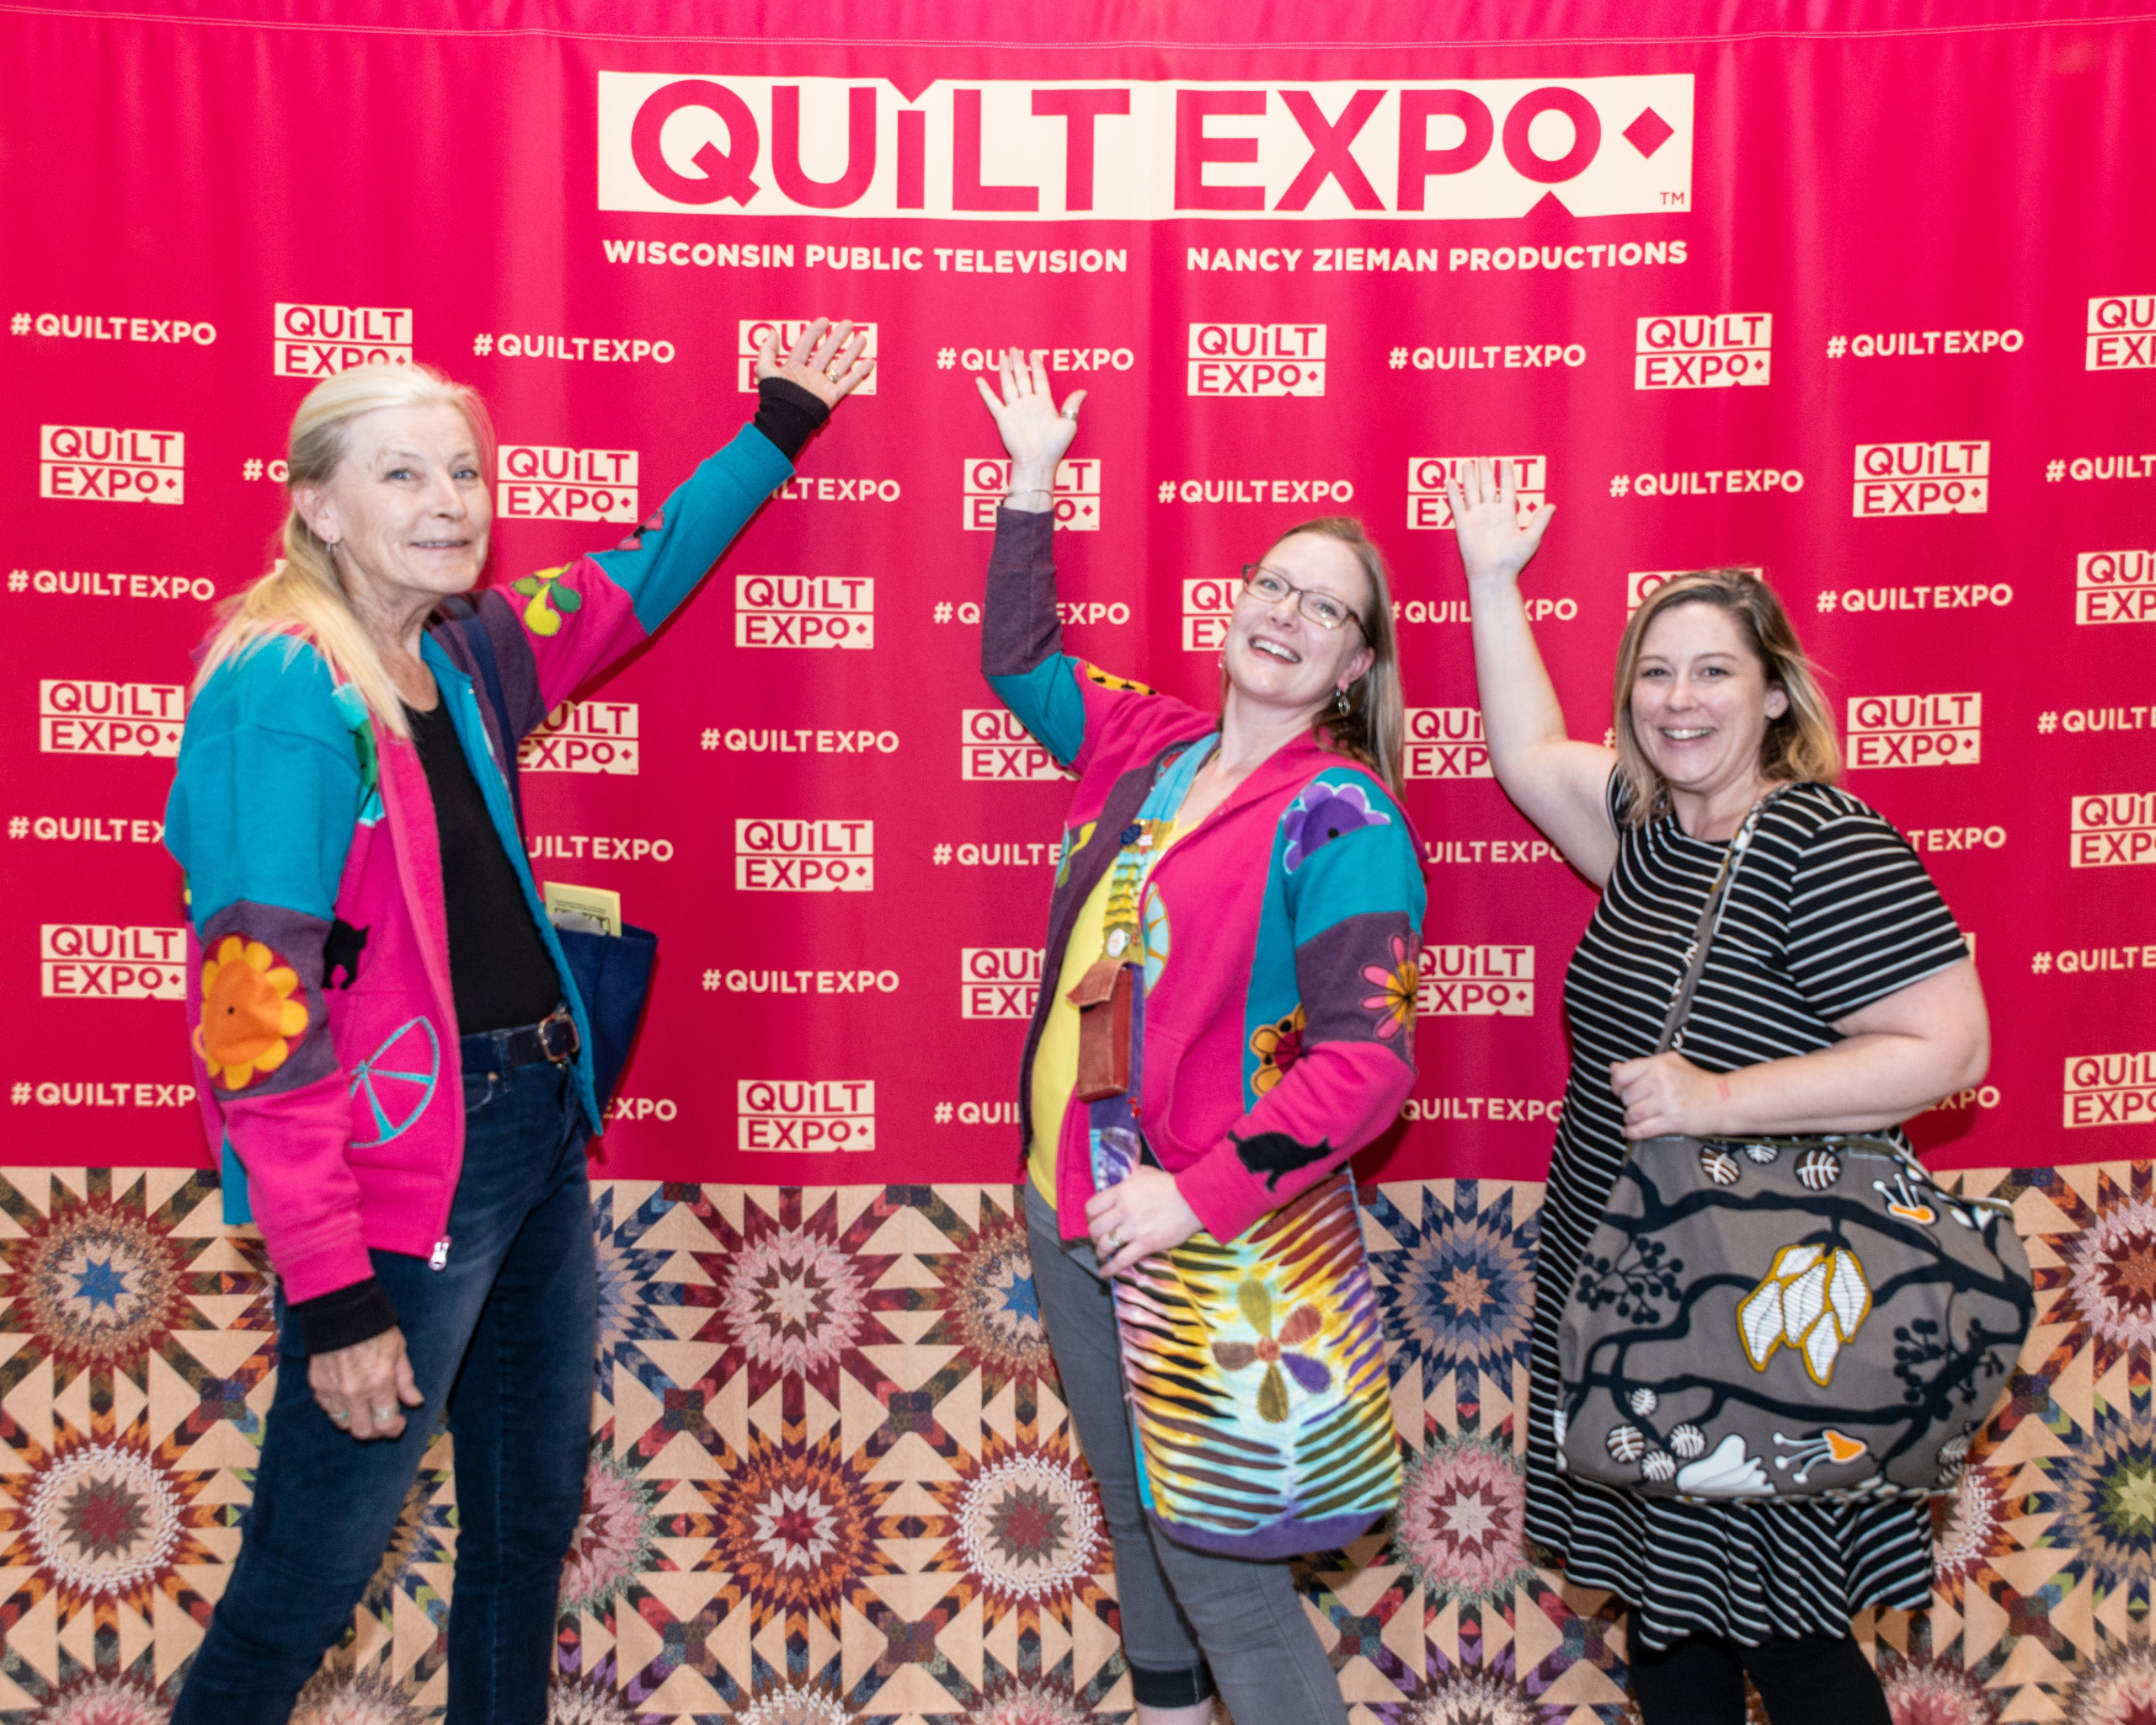 Three attendees pose in front of the photo backdrop at Quilt Expo's entrance.